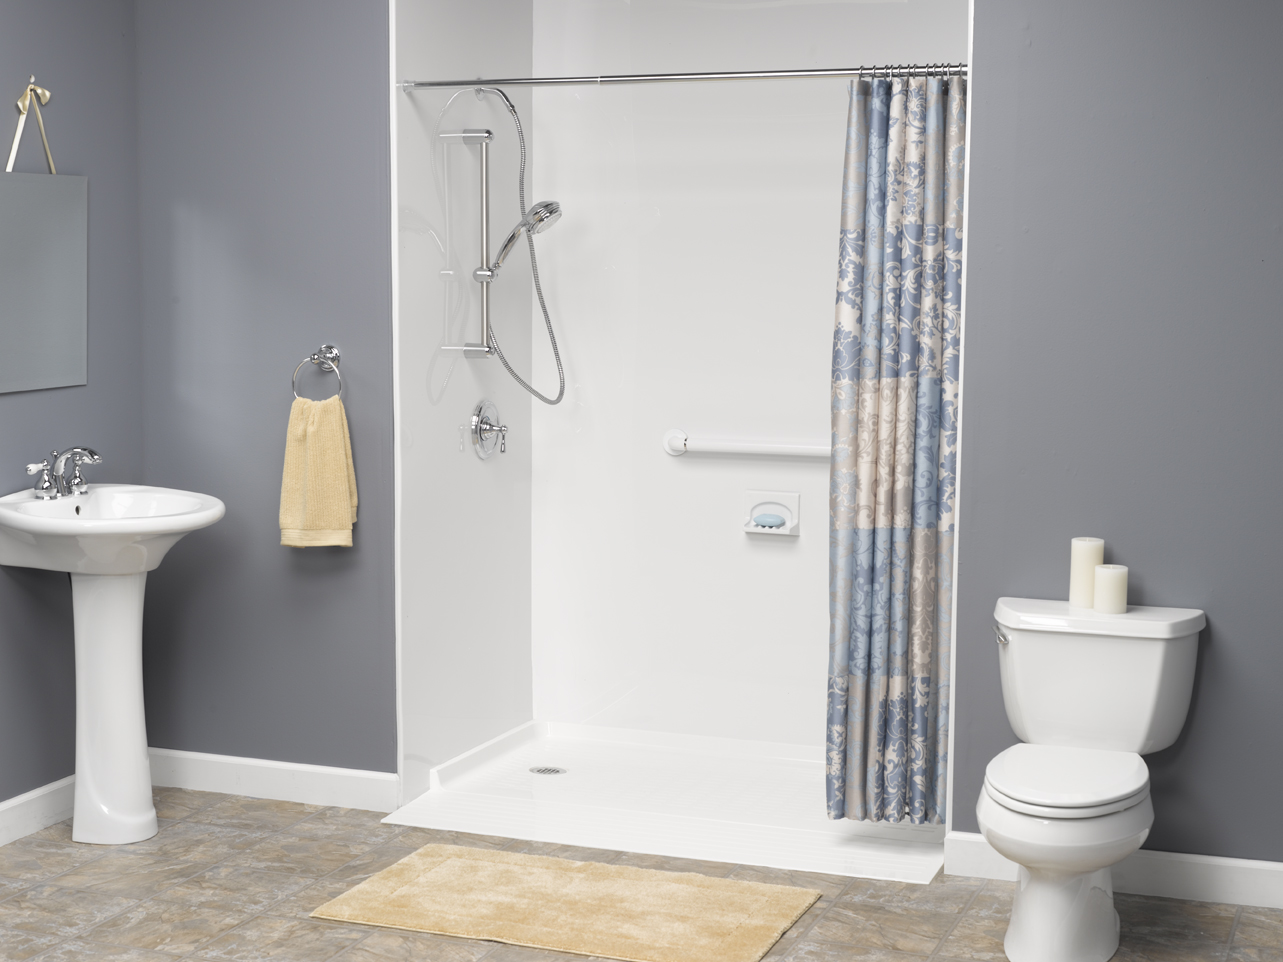 Acrylic Tub And Shower Liners Bathroom Remodeling Tub Liner Shower ...